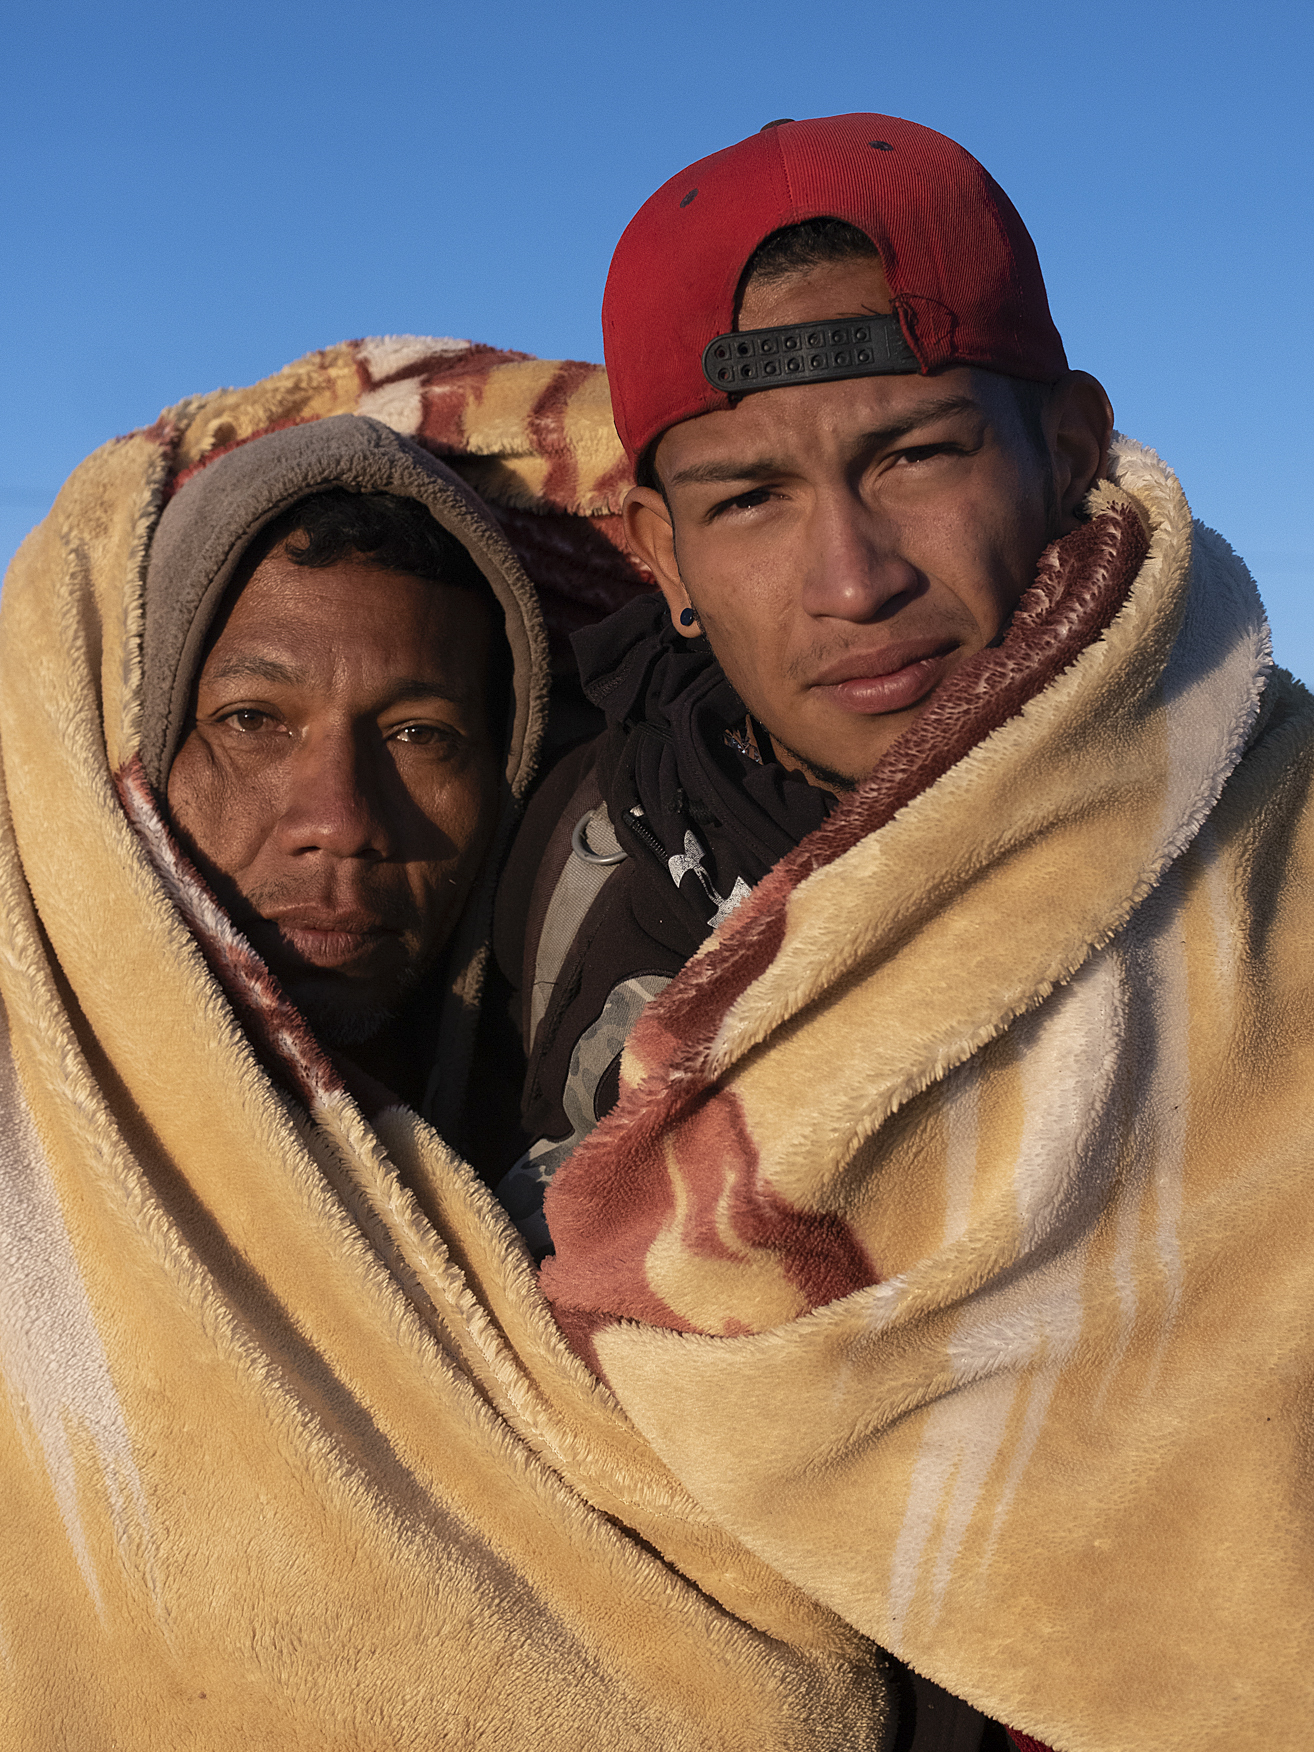 Franklin Aguilar and his nephew Sebastian Aguilar cover themselves with a blanket in the Berlin highlands. Franklin was a physical education teacher in Valencia, Venezuela. He is from a town where it is very hard to find food and basic items. He would have to travel to other towns to buy food but was robbed repeatedly by thieves that pray on people traveling to buy food.